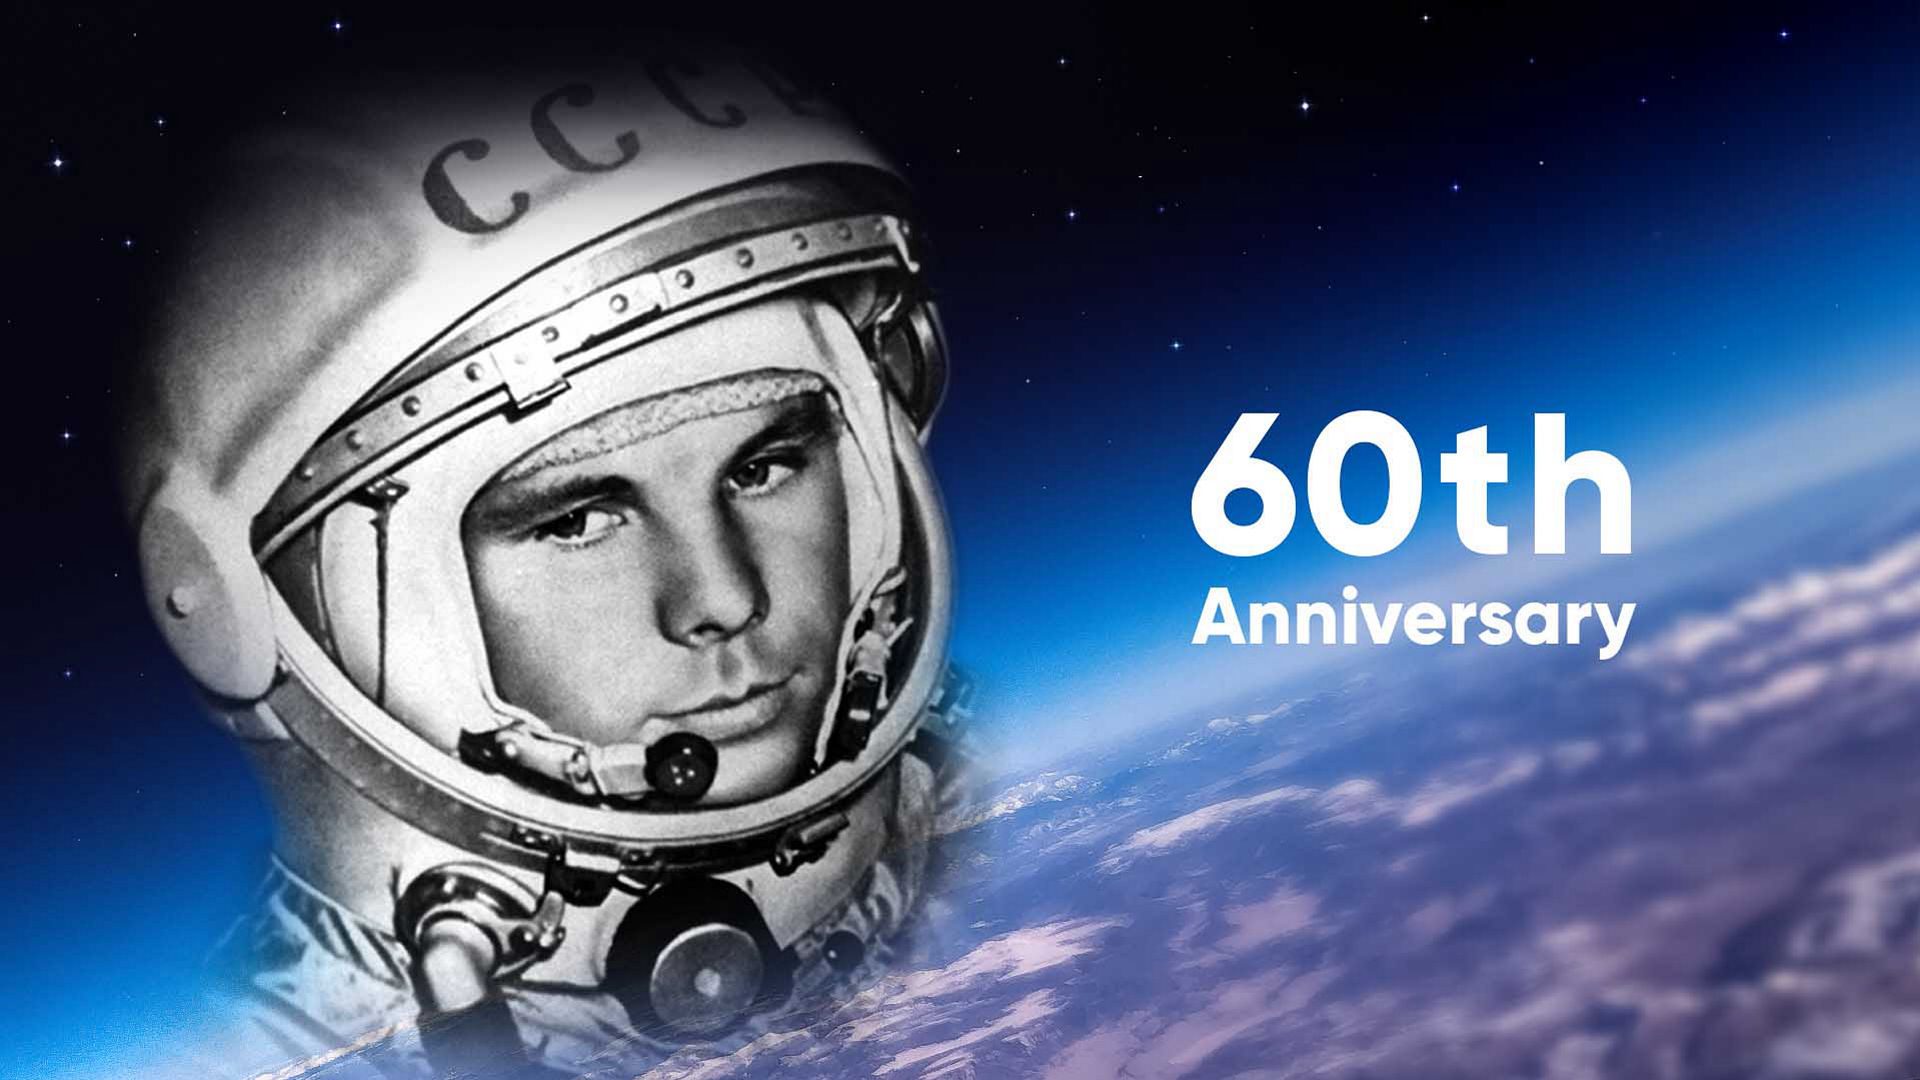 60th Anniversary of Yuri Gagarin's flight